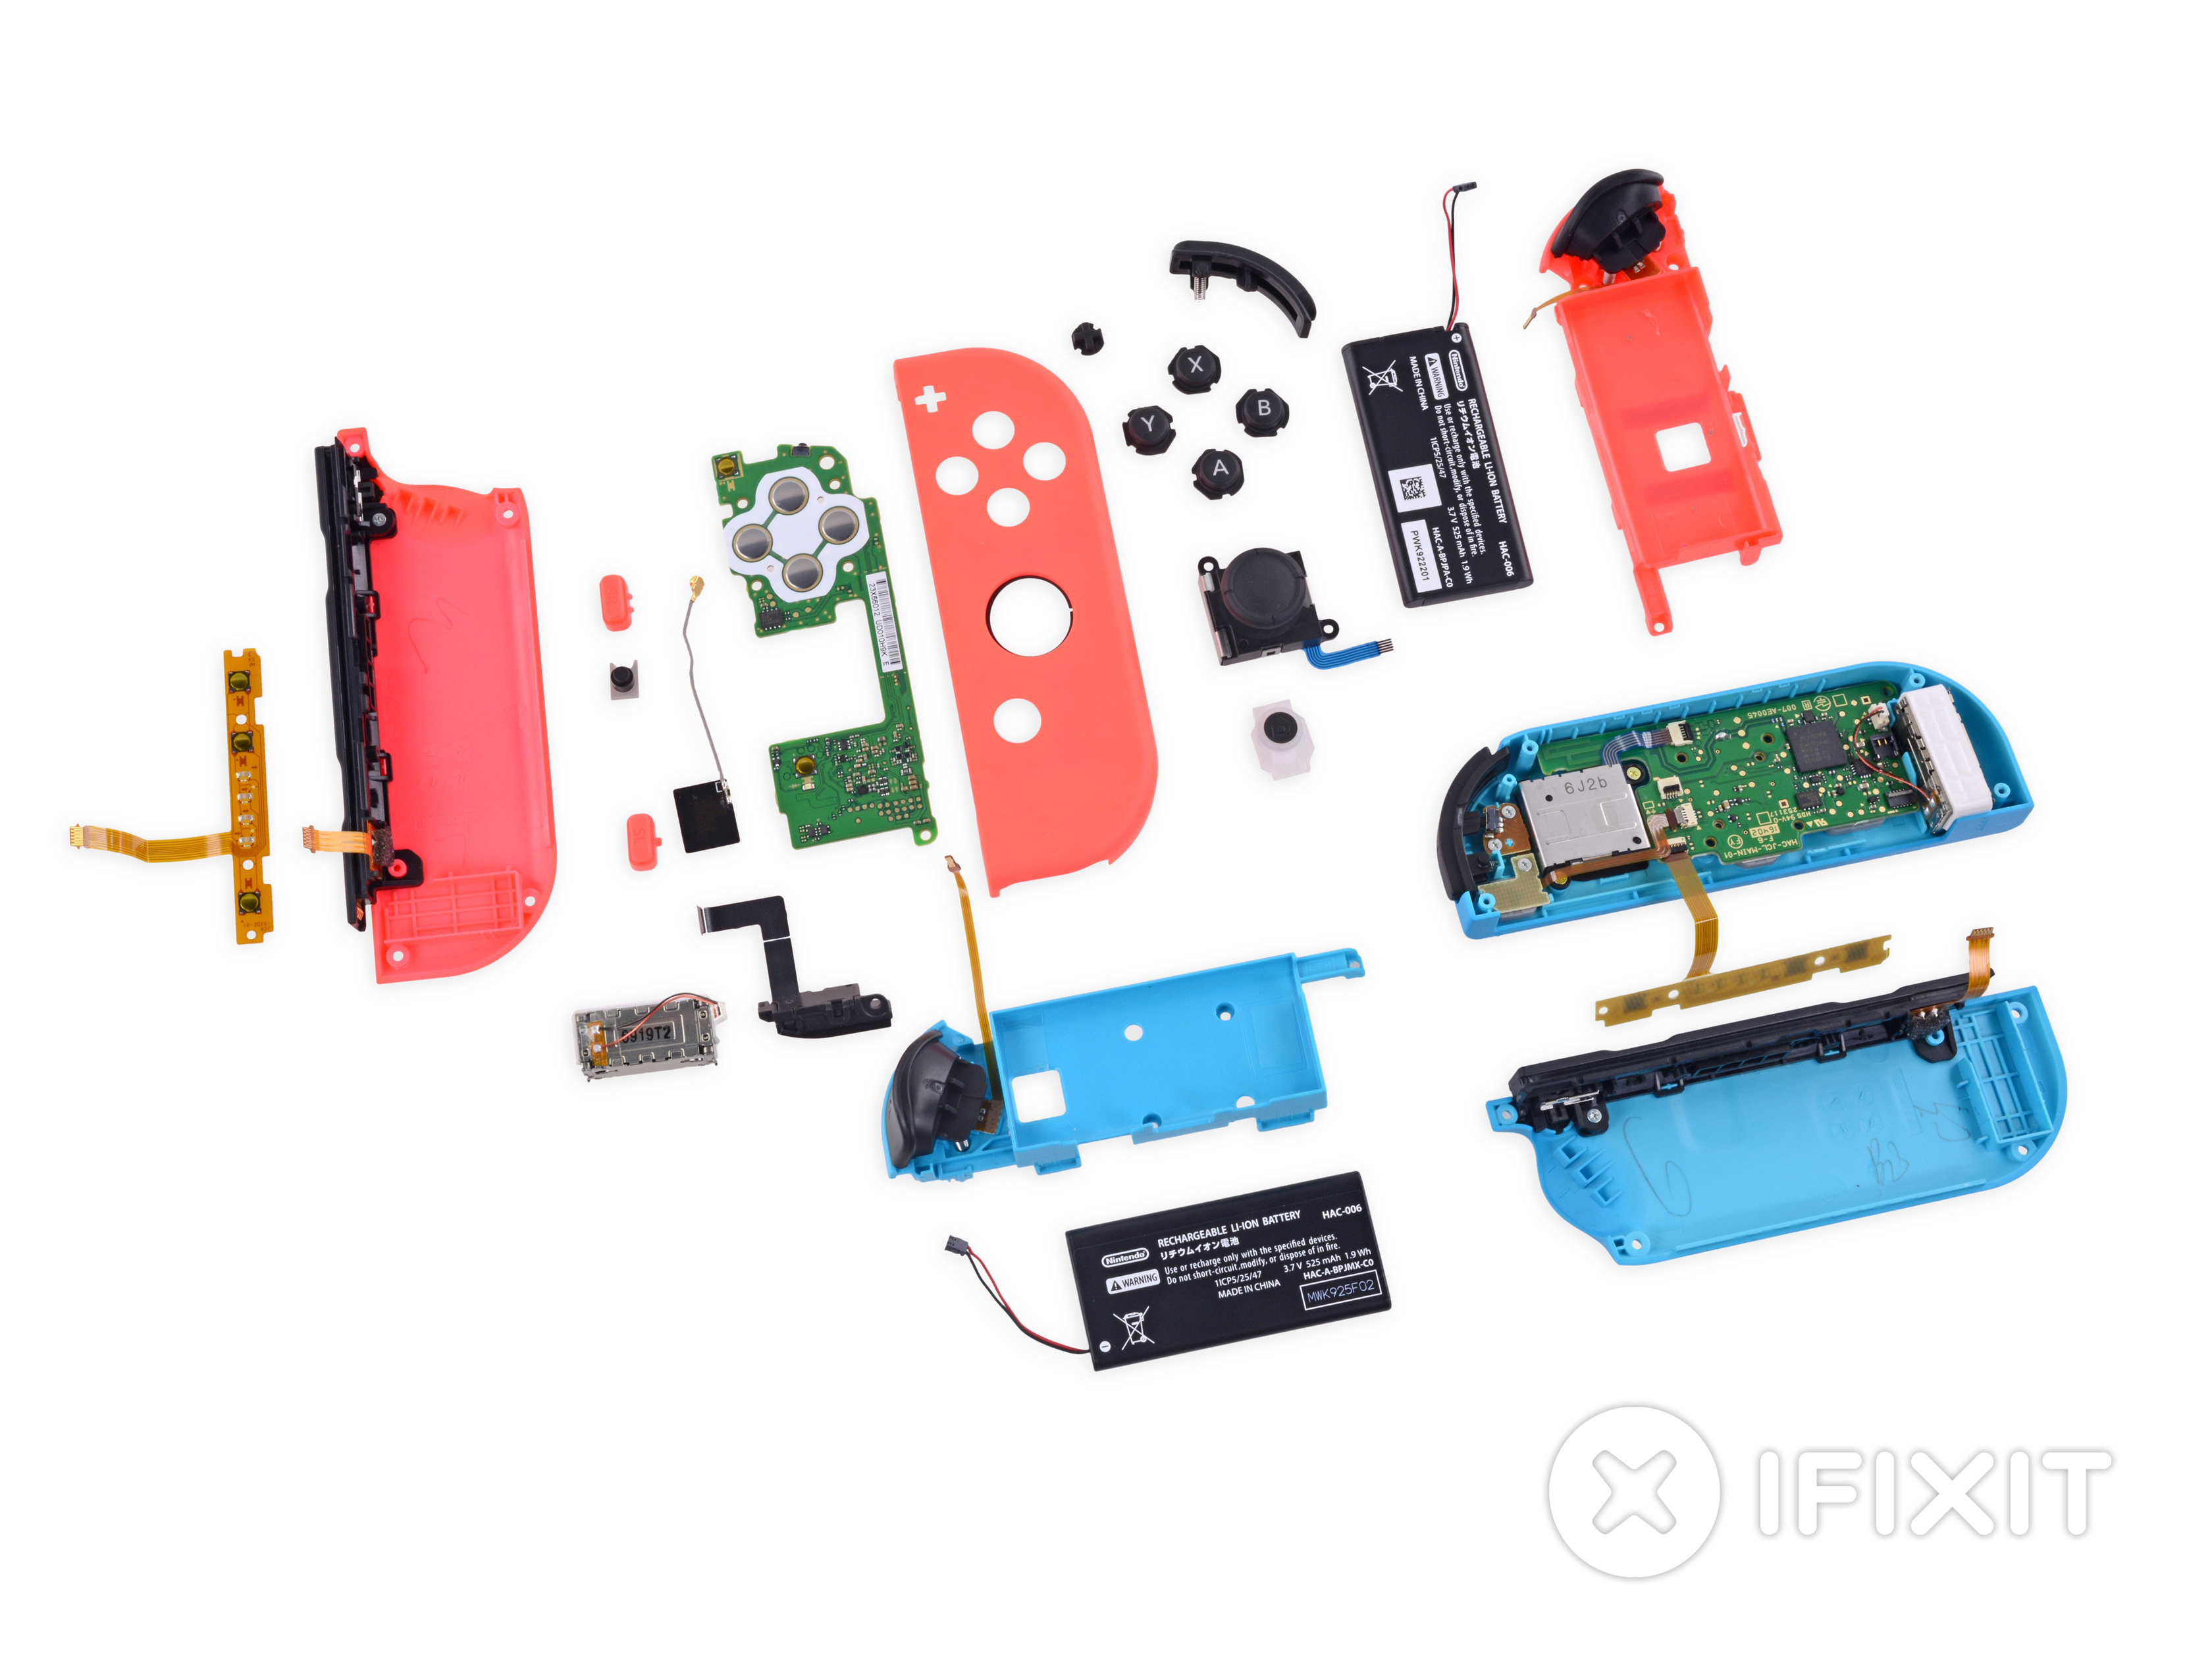 Nintendo Switch Teardown Ifixit 2004 Dodge Neon A C Pressor Wiring Diagram Free Picture